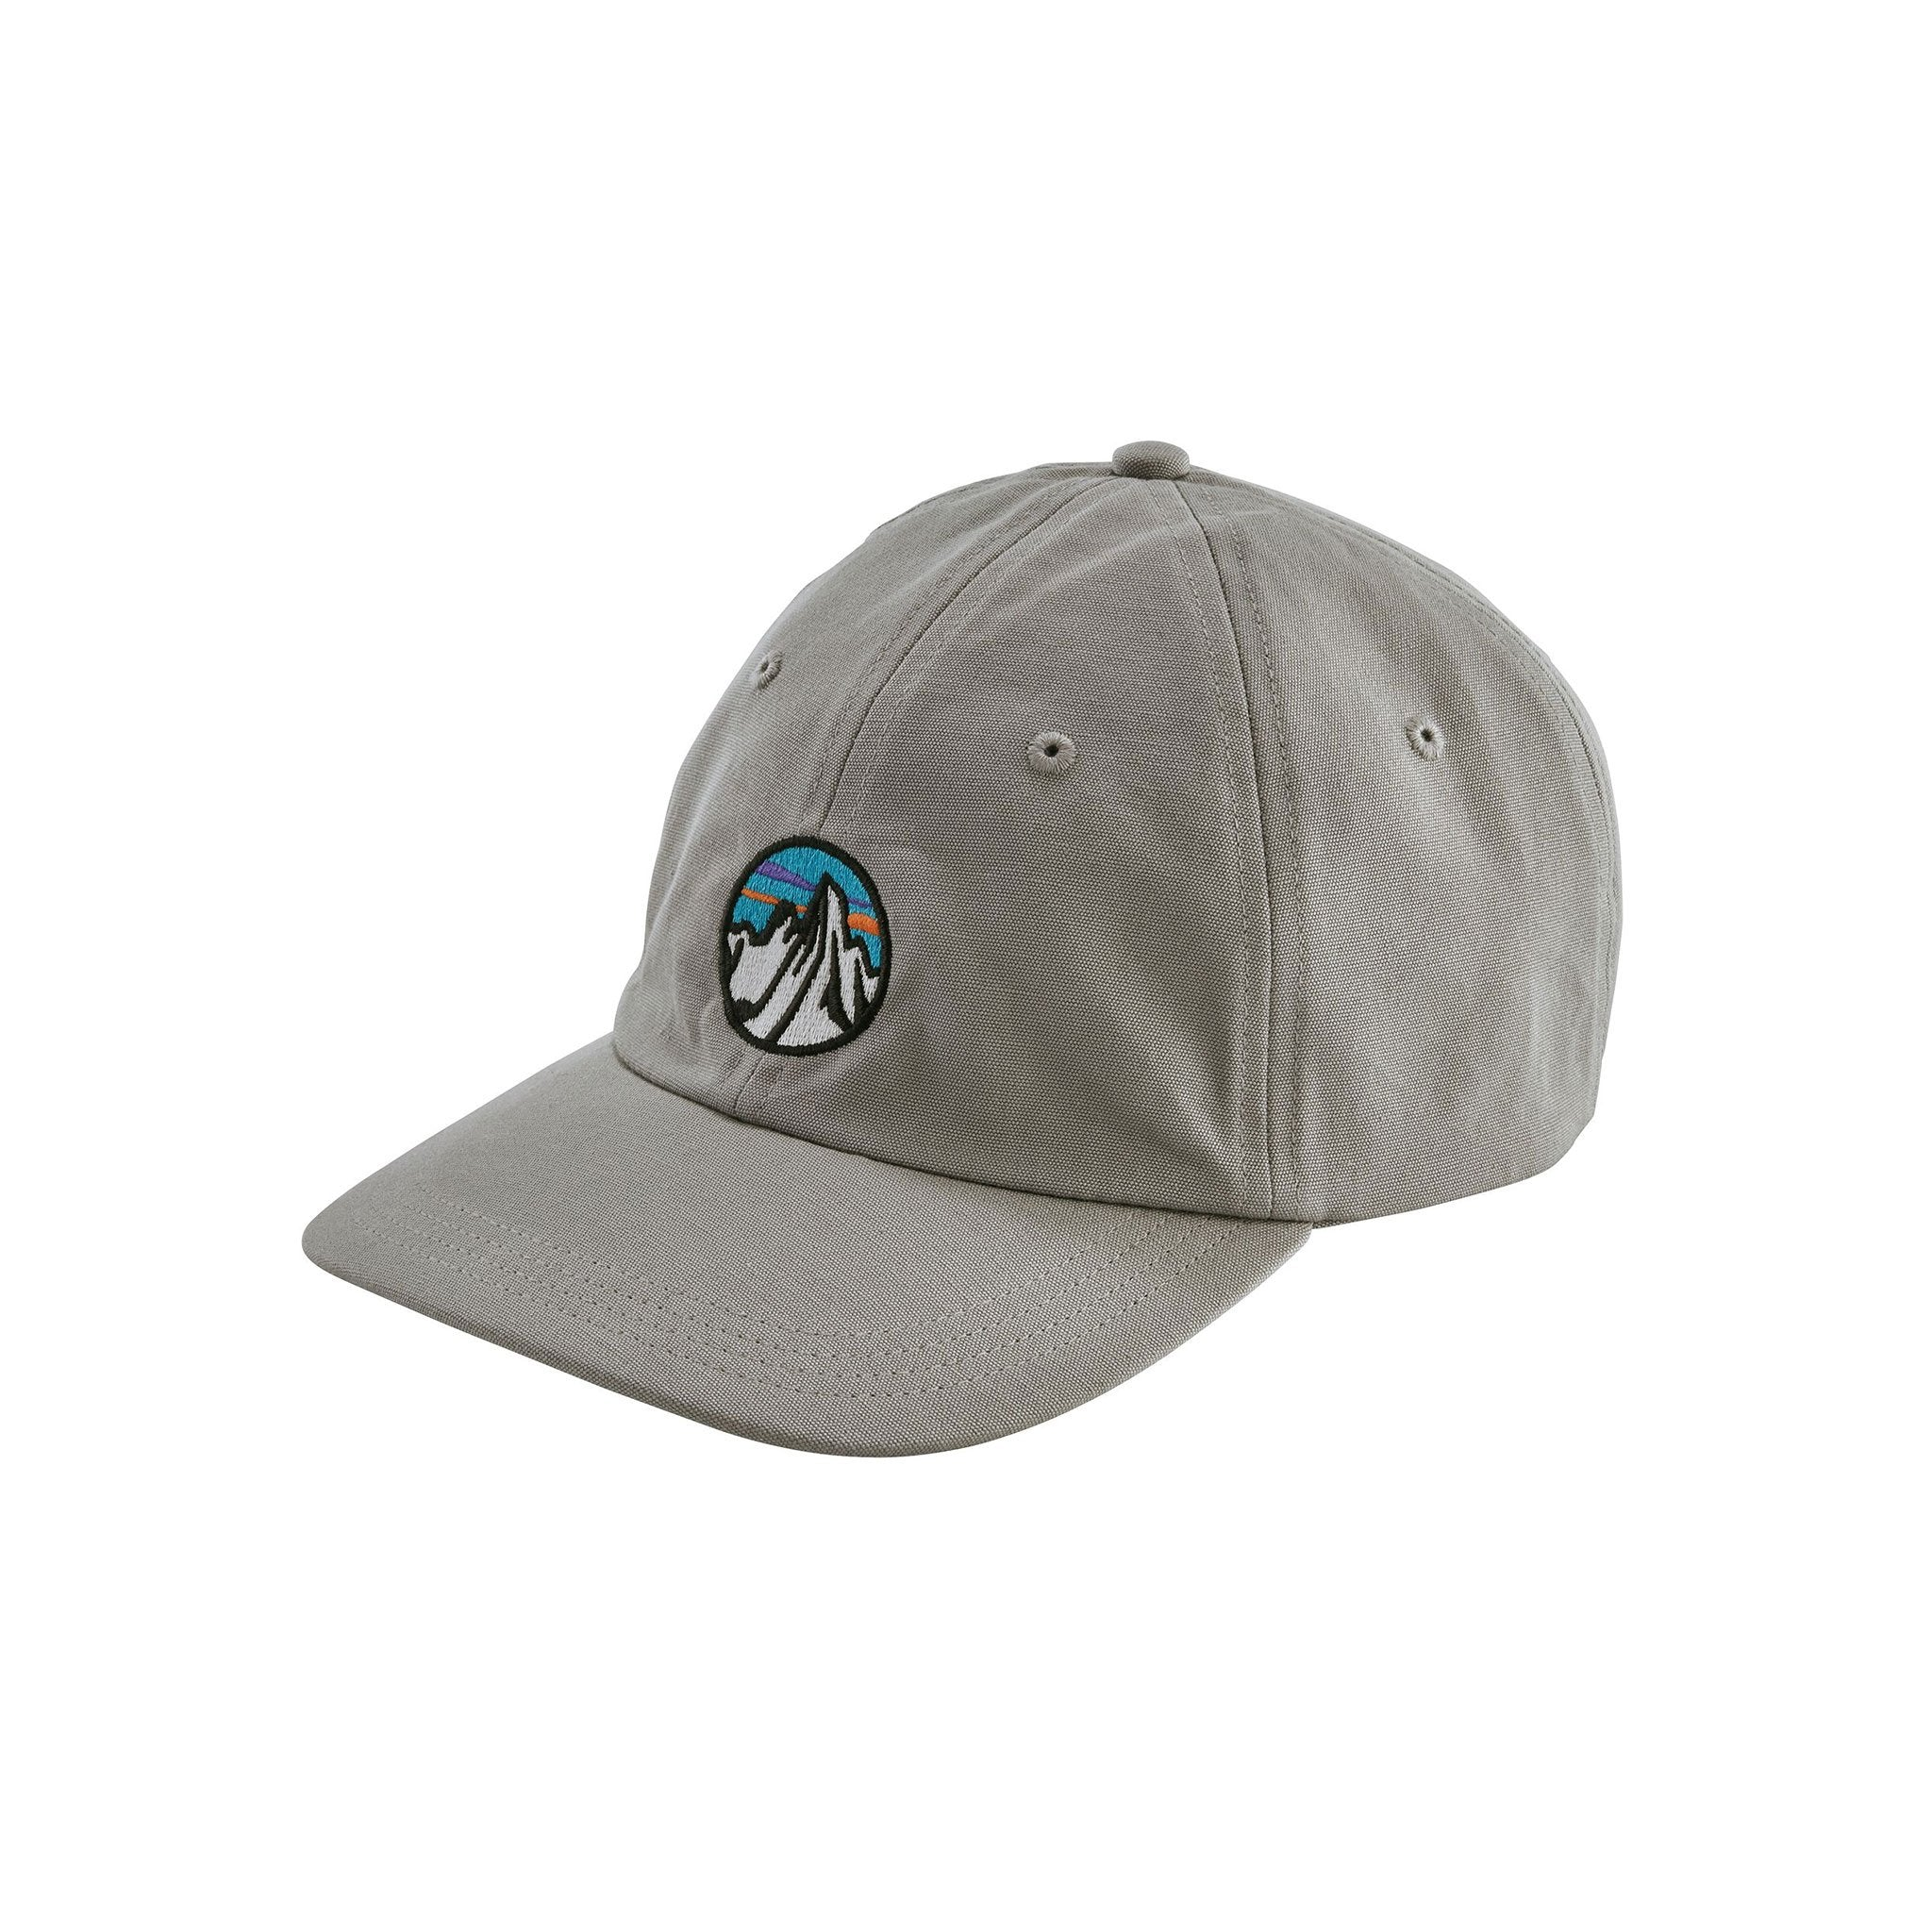 9808f8c20ce Women s Caps - Alpine Start Outfitters